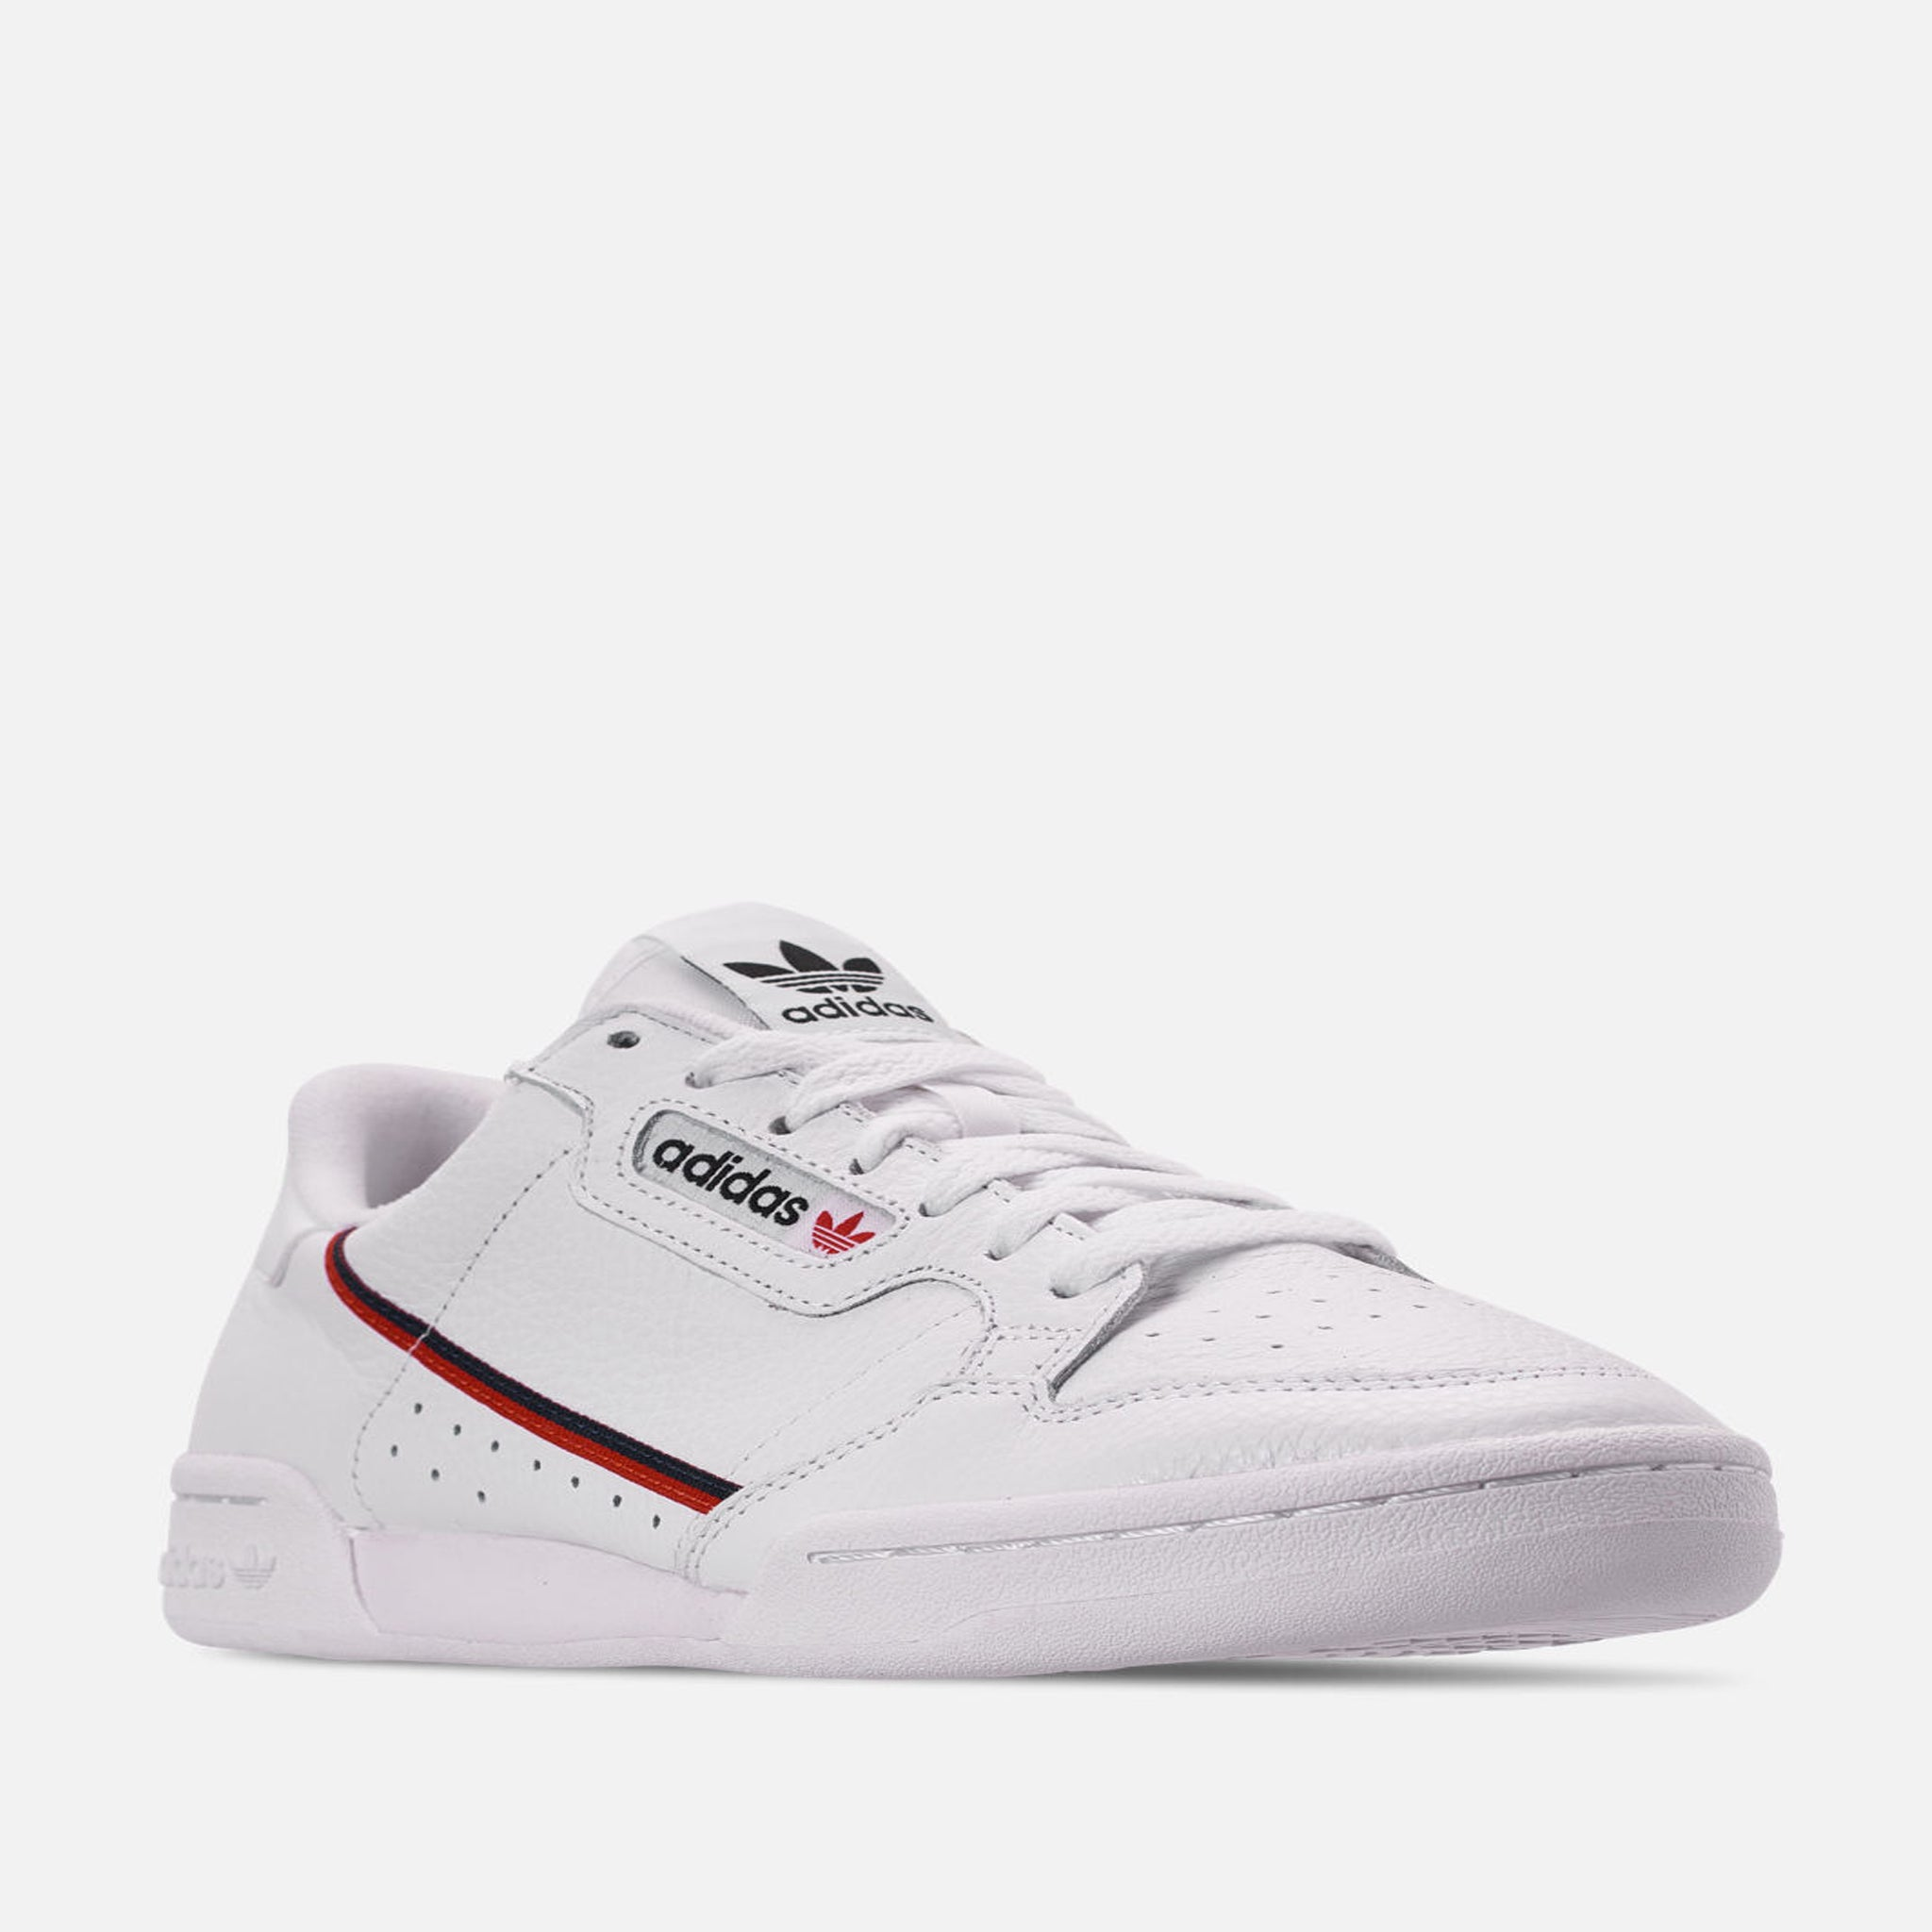 best loved b7891 ec53f Men s Adidas Originals Continental 80 Casual Shoes Off White  Scarlet Collegiate  Navy - PZOZO